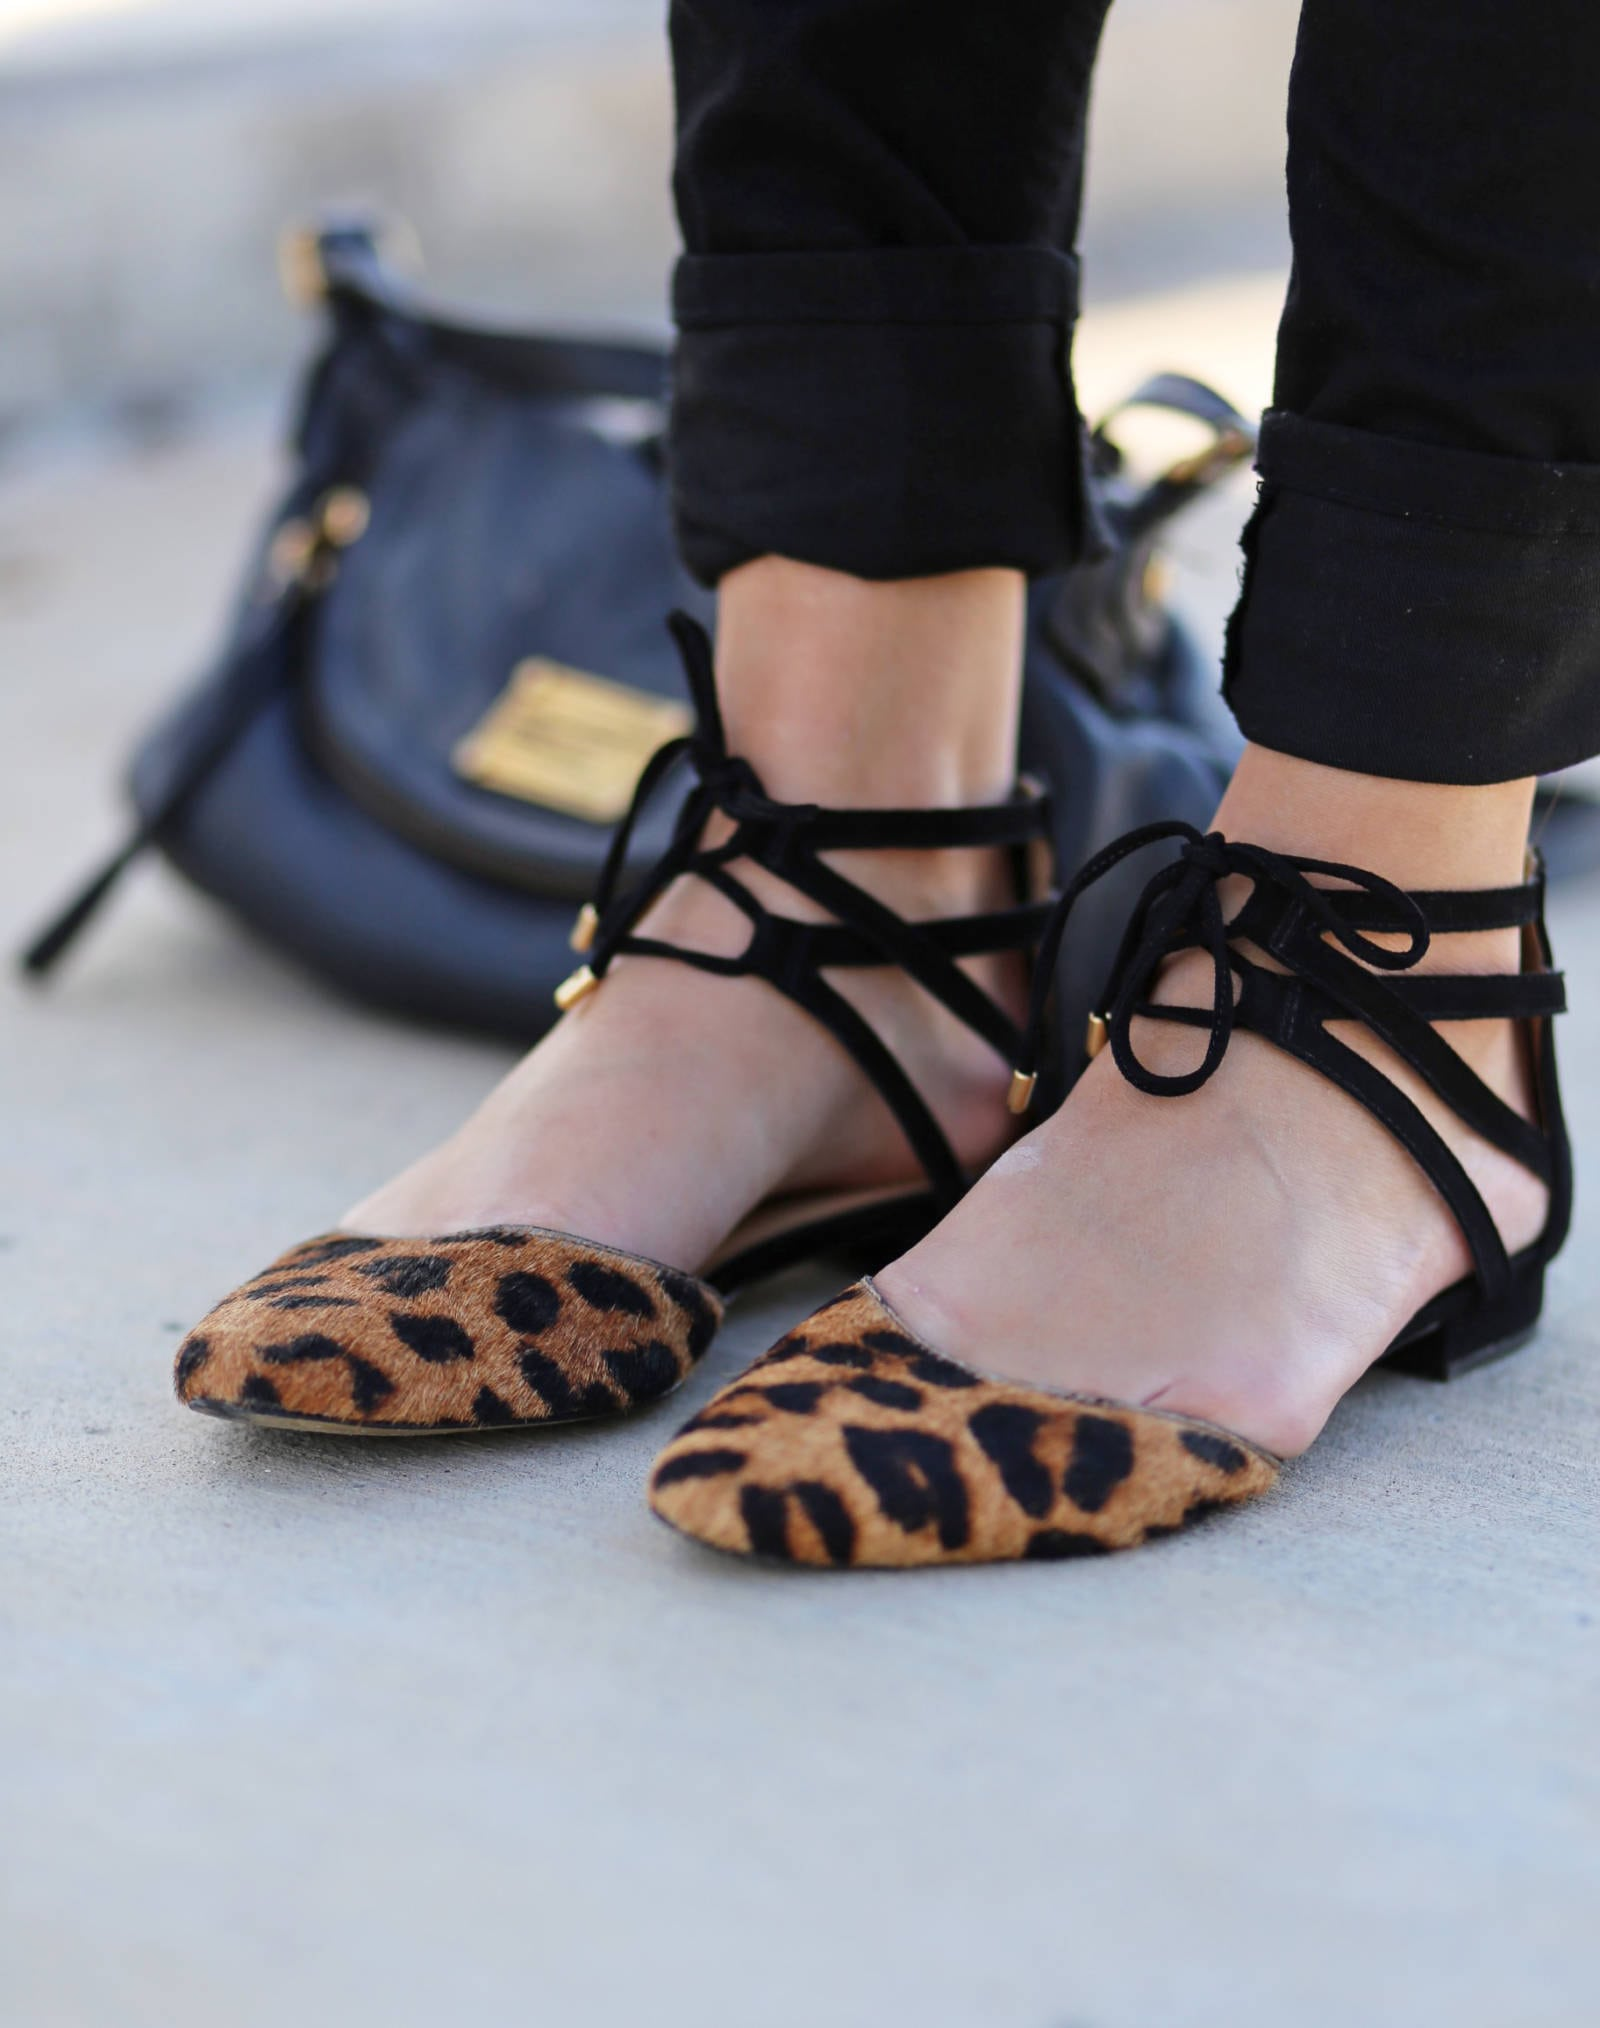 the best flats for fall casual and affordable fall outfit leather and lace | where to buy the best sunglasses | leather and lace | fall fashion | Mash Elle beauty blogger